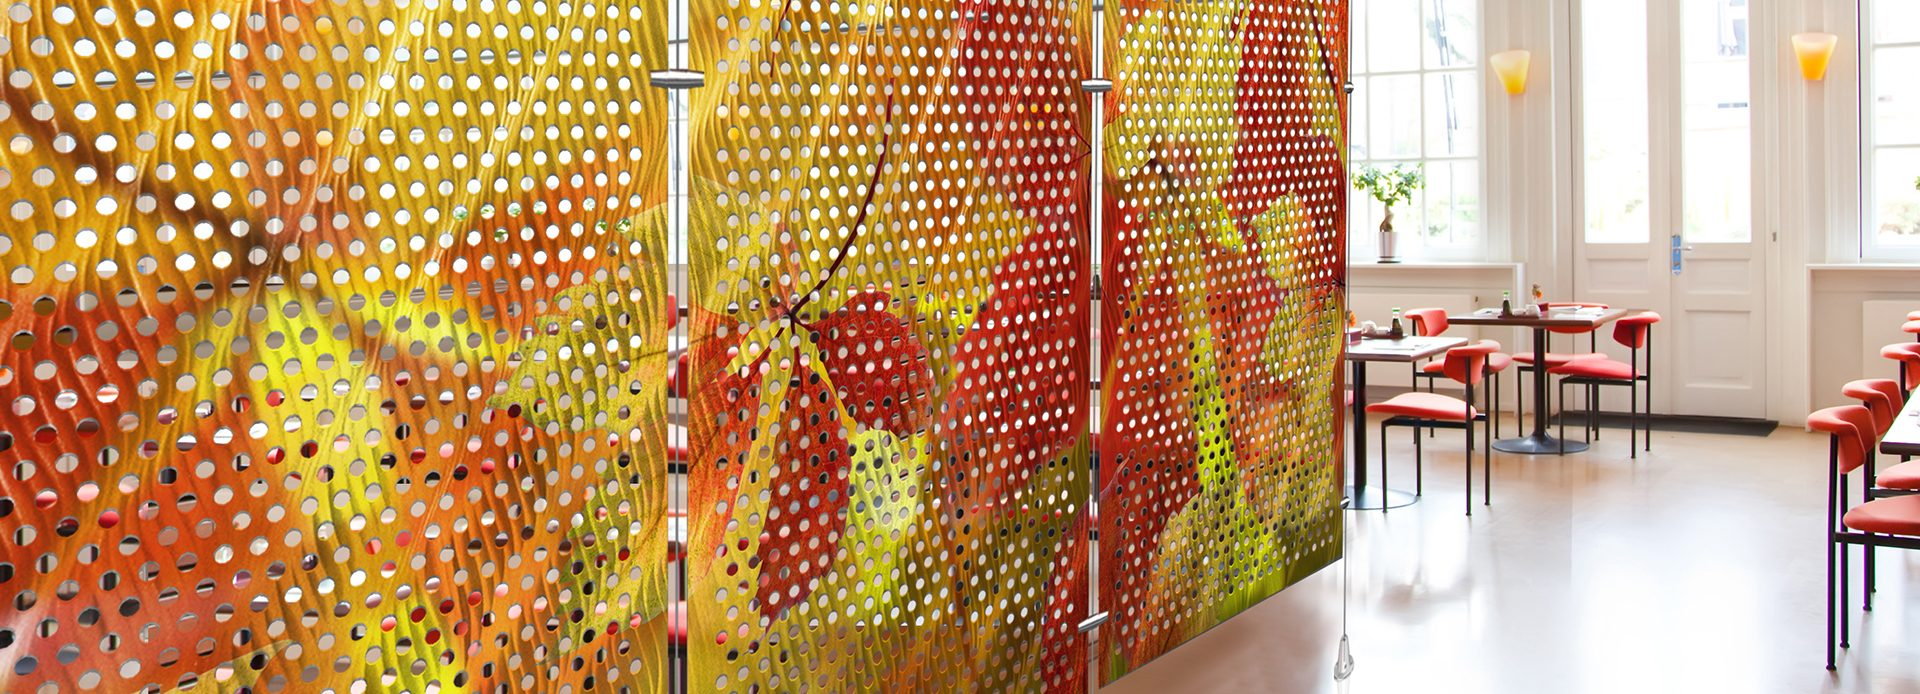 Metal Room Divider, Perforated, Moz Designer Metals